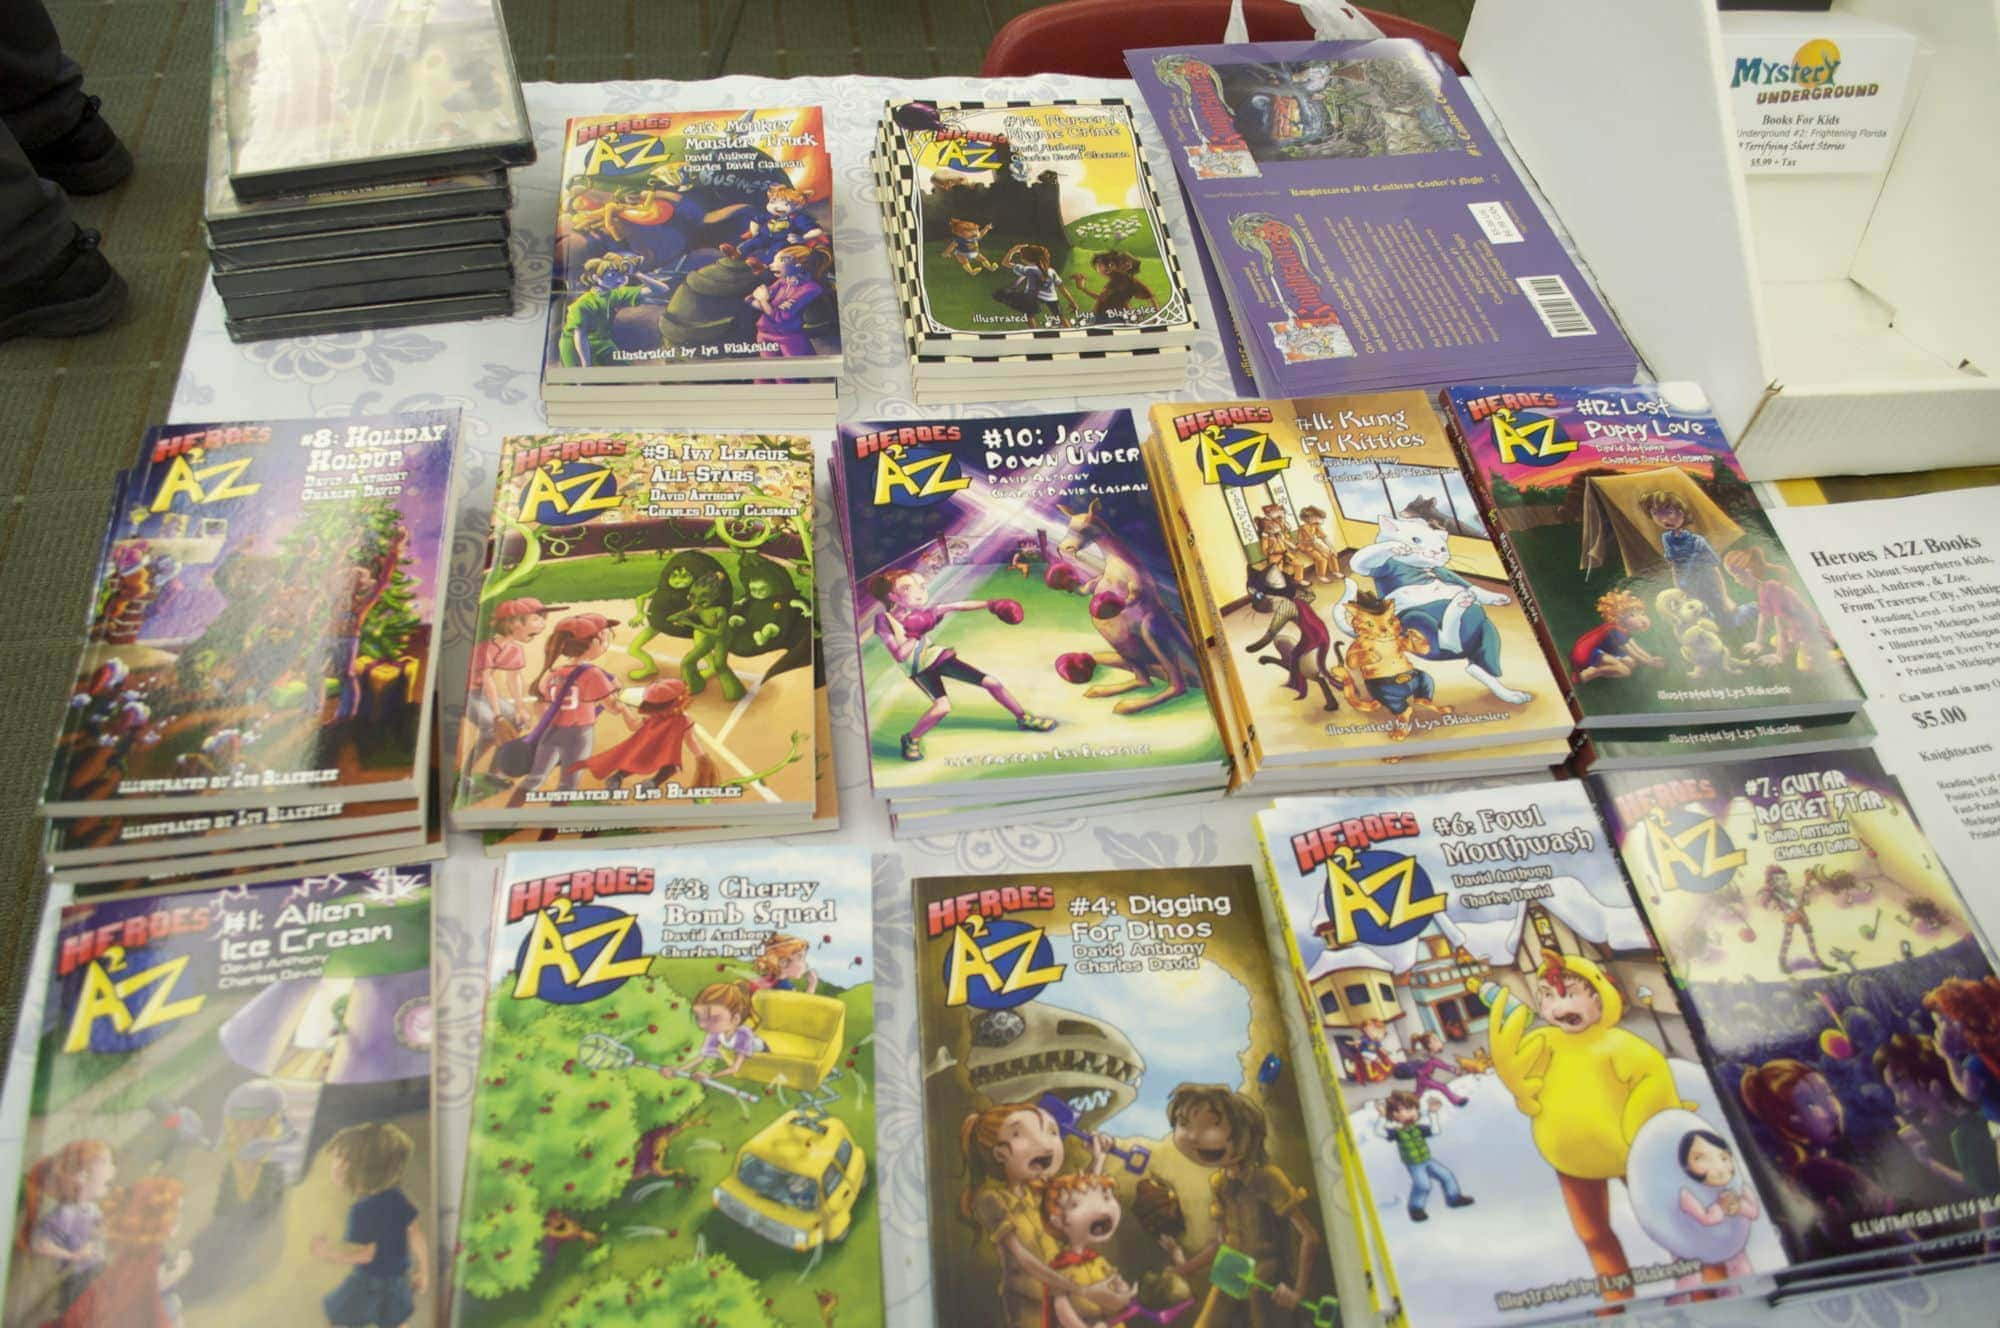 """Heroes A2Z"" and ""Knightscares"" are popular series that are perfect gifts for young readers."